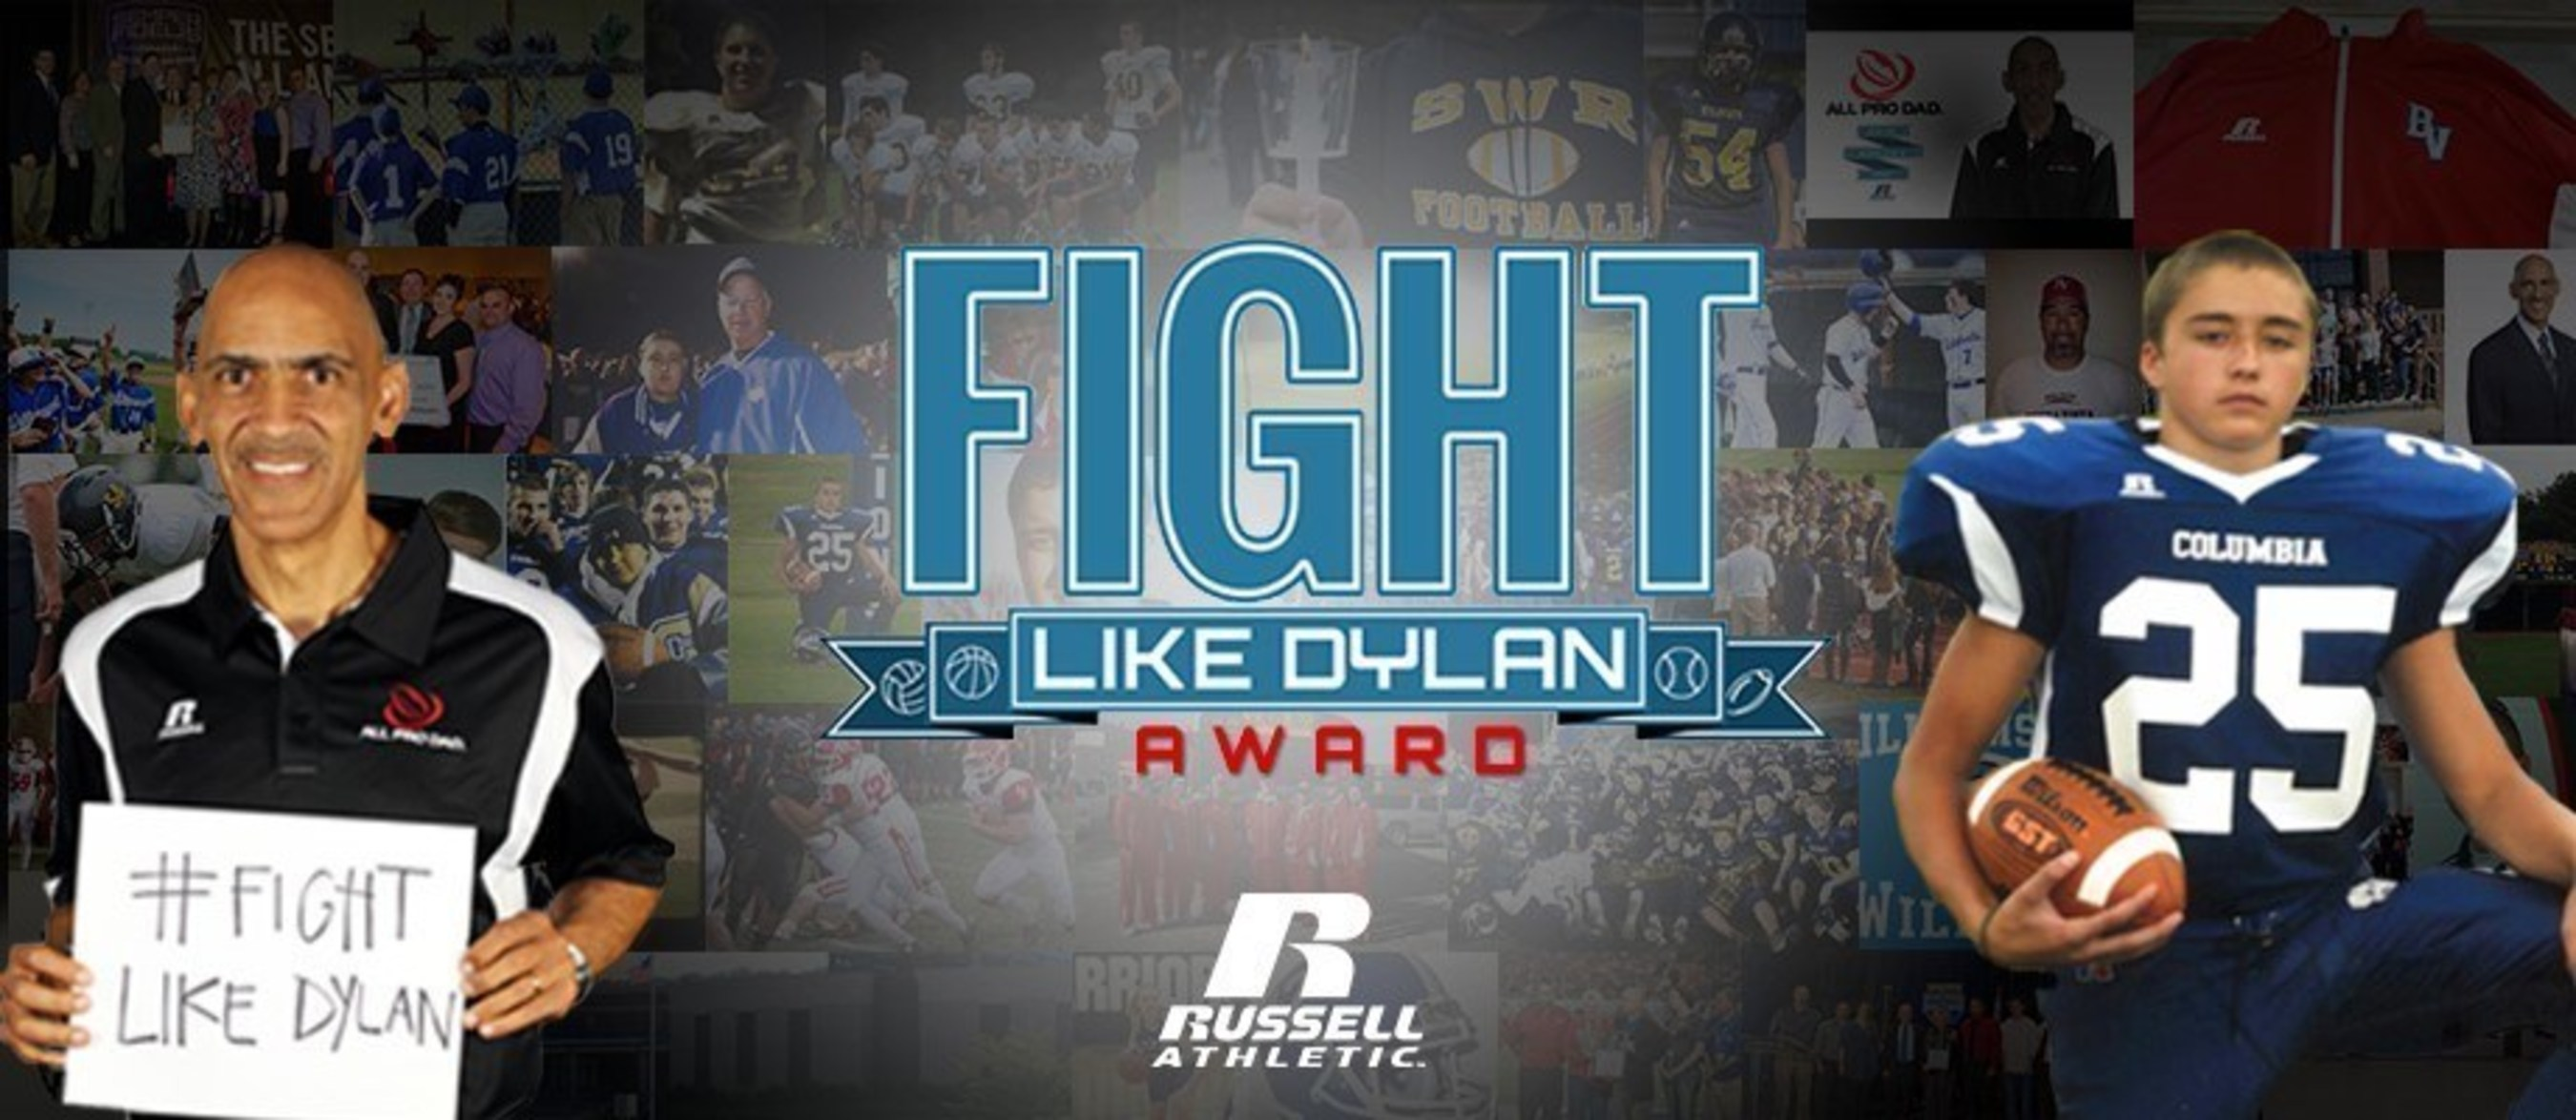 Russell Athletic Fifth Annual 'Fight Like Dylan Award'